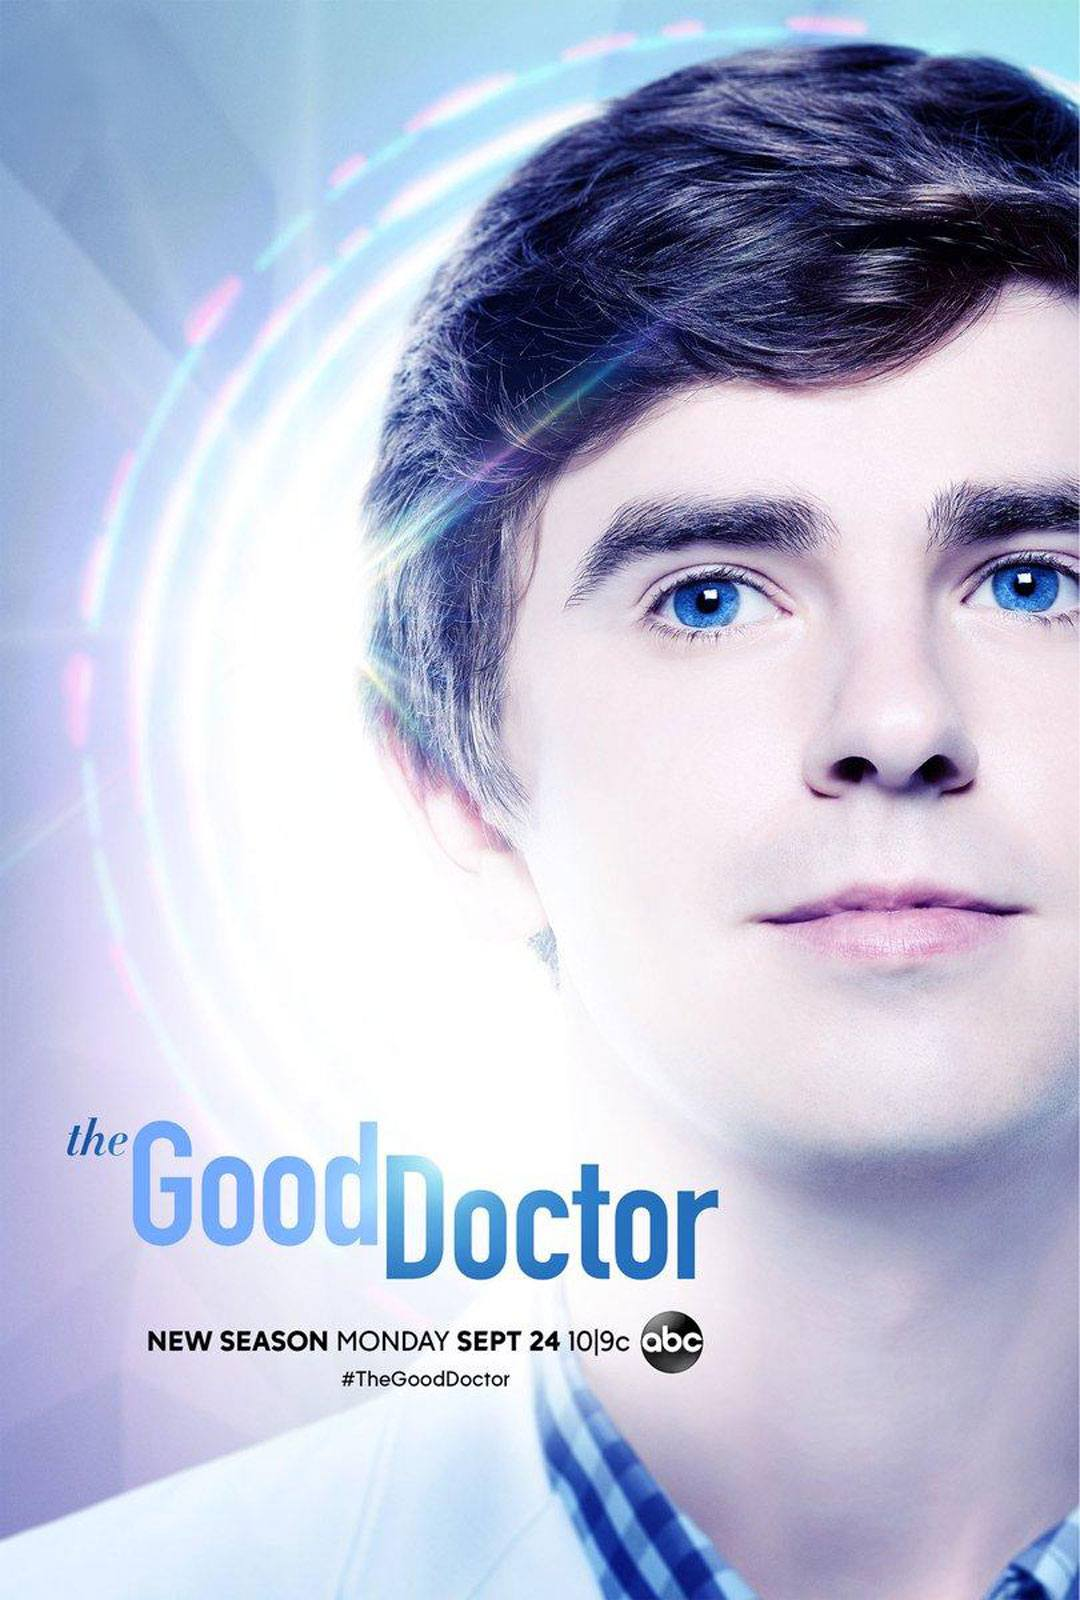 Affiche Poster saison 2 good doctor série disney abc